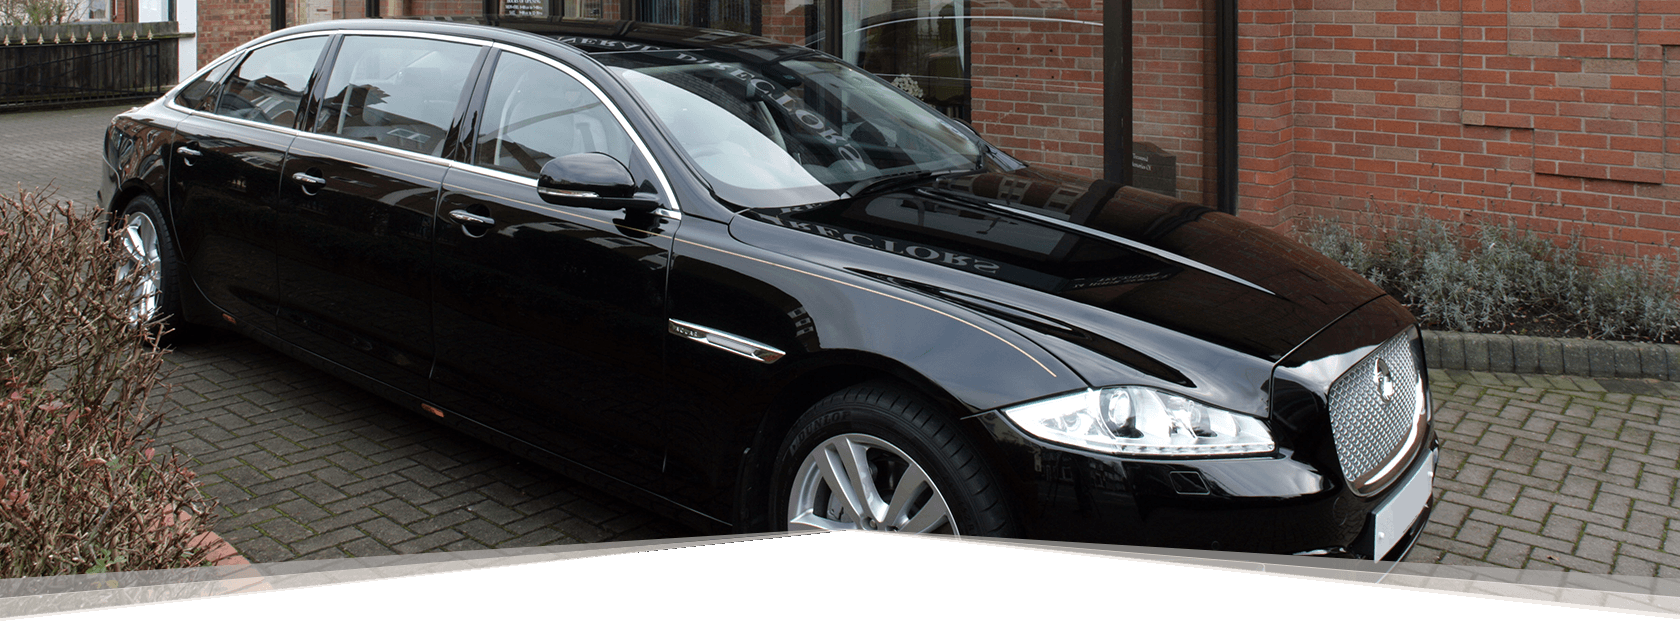 Funeral car hire in South Wigston